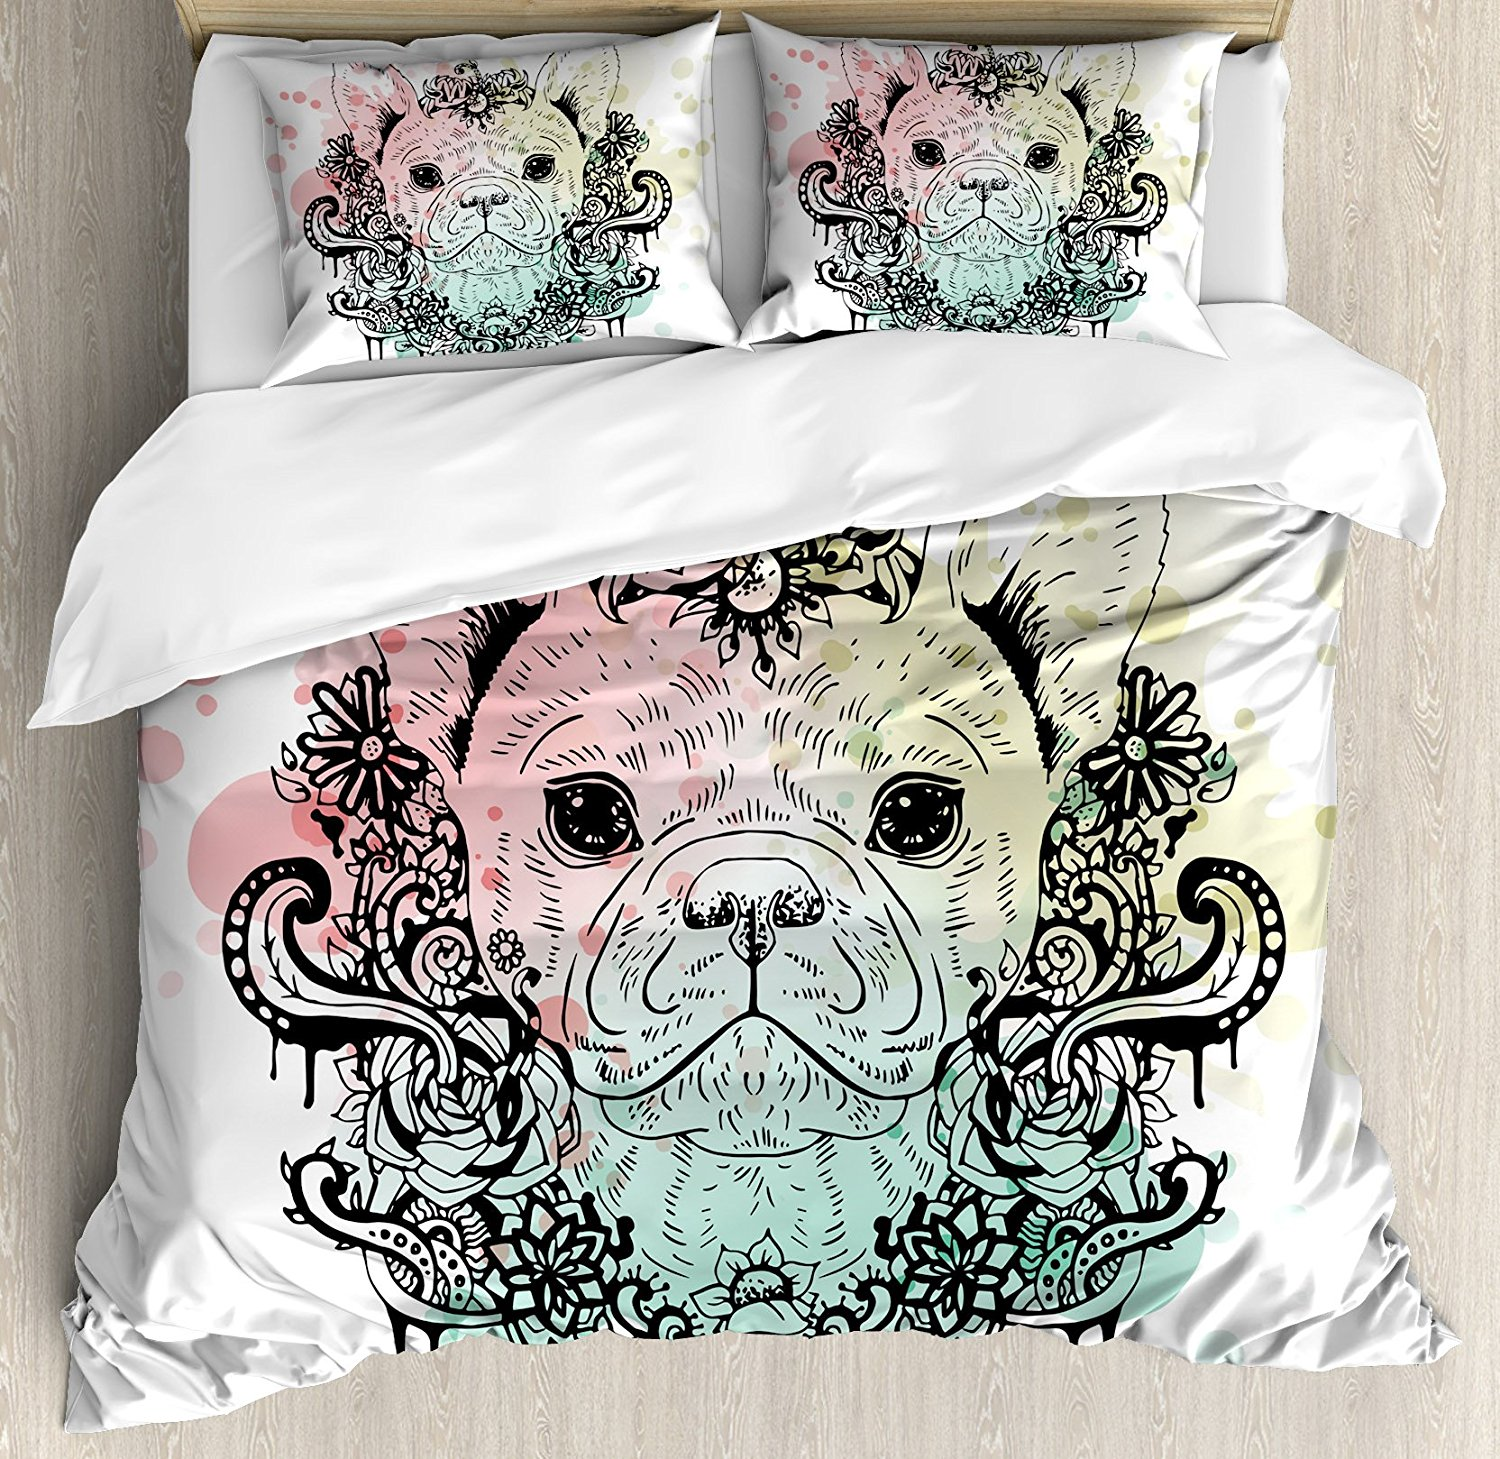 Animal Duvet Cover Set French Bulldog with Floral Wreath on Brushstroke Watercolor Print 4 Piece Bedding